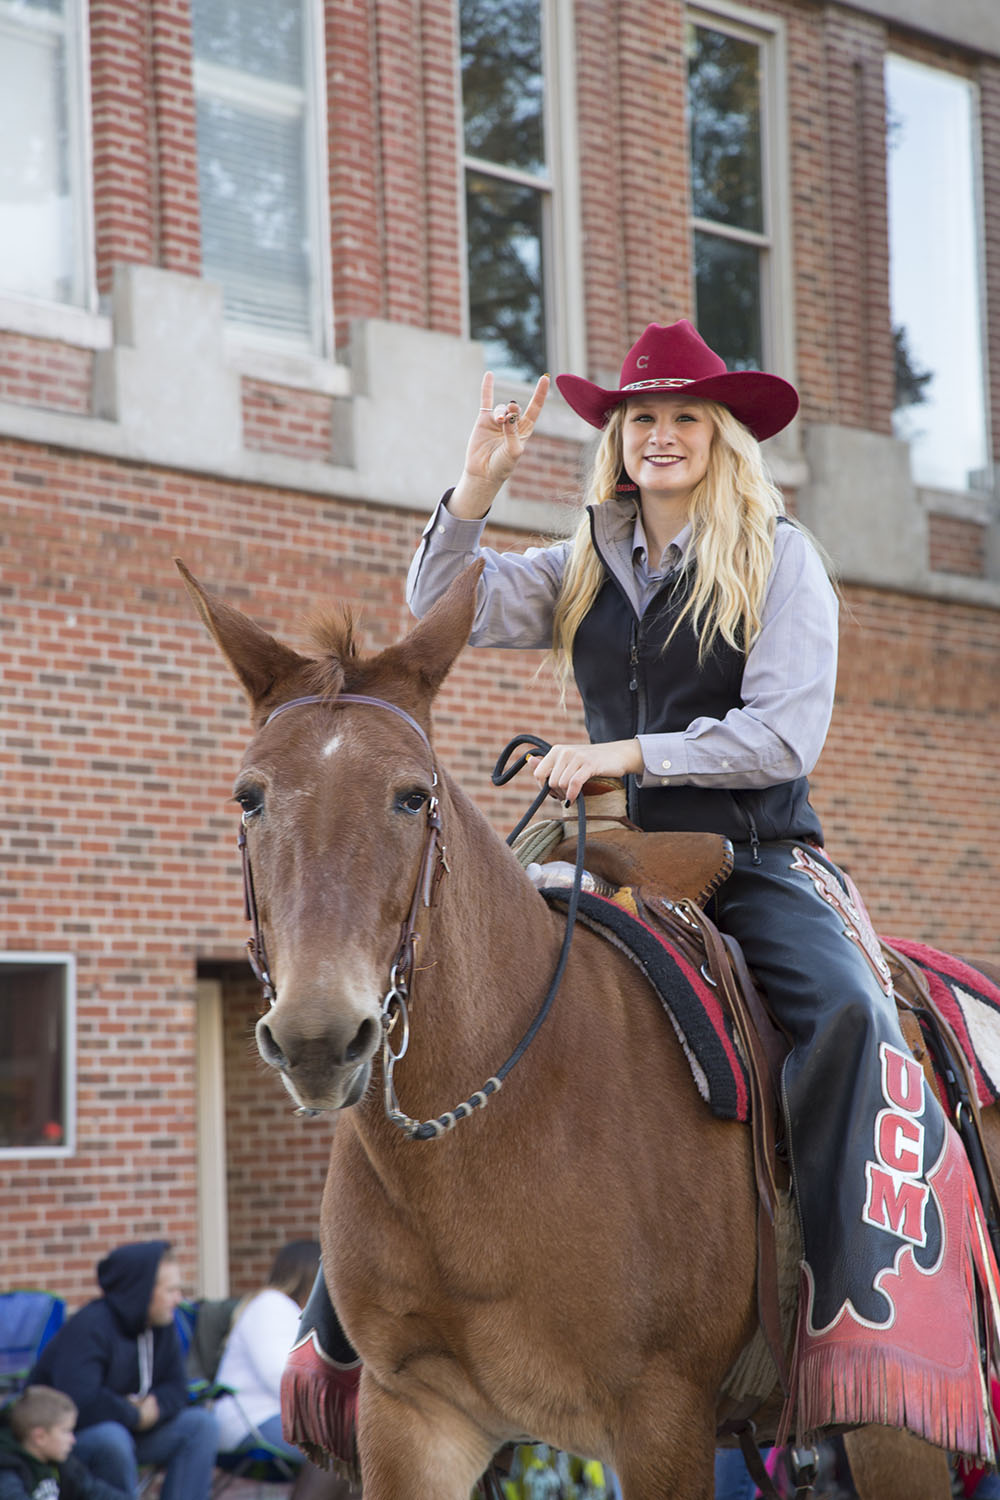 Mule in Homecoming Parade